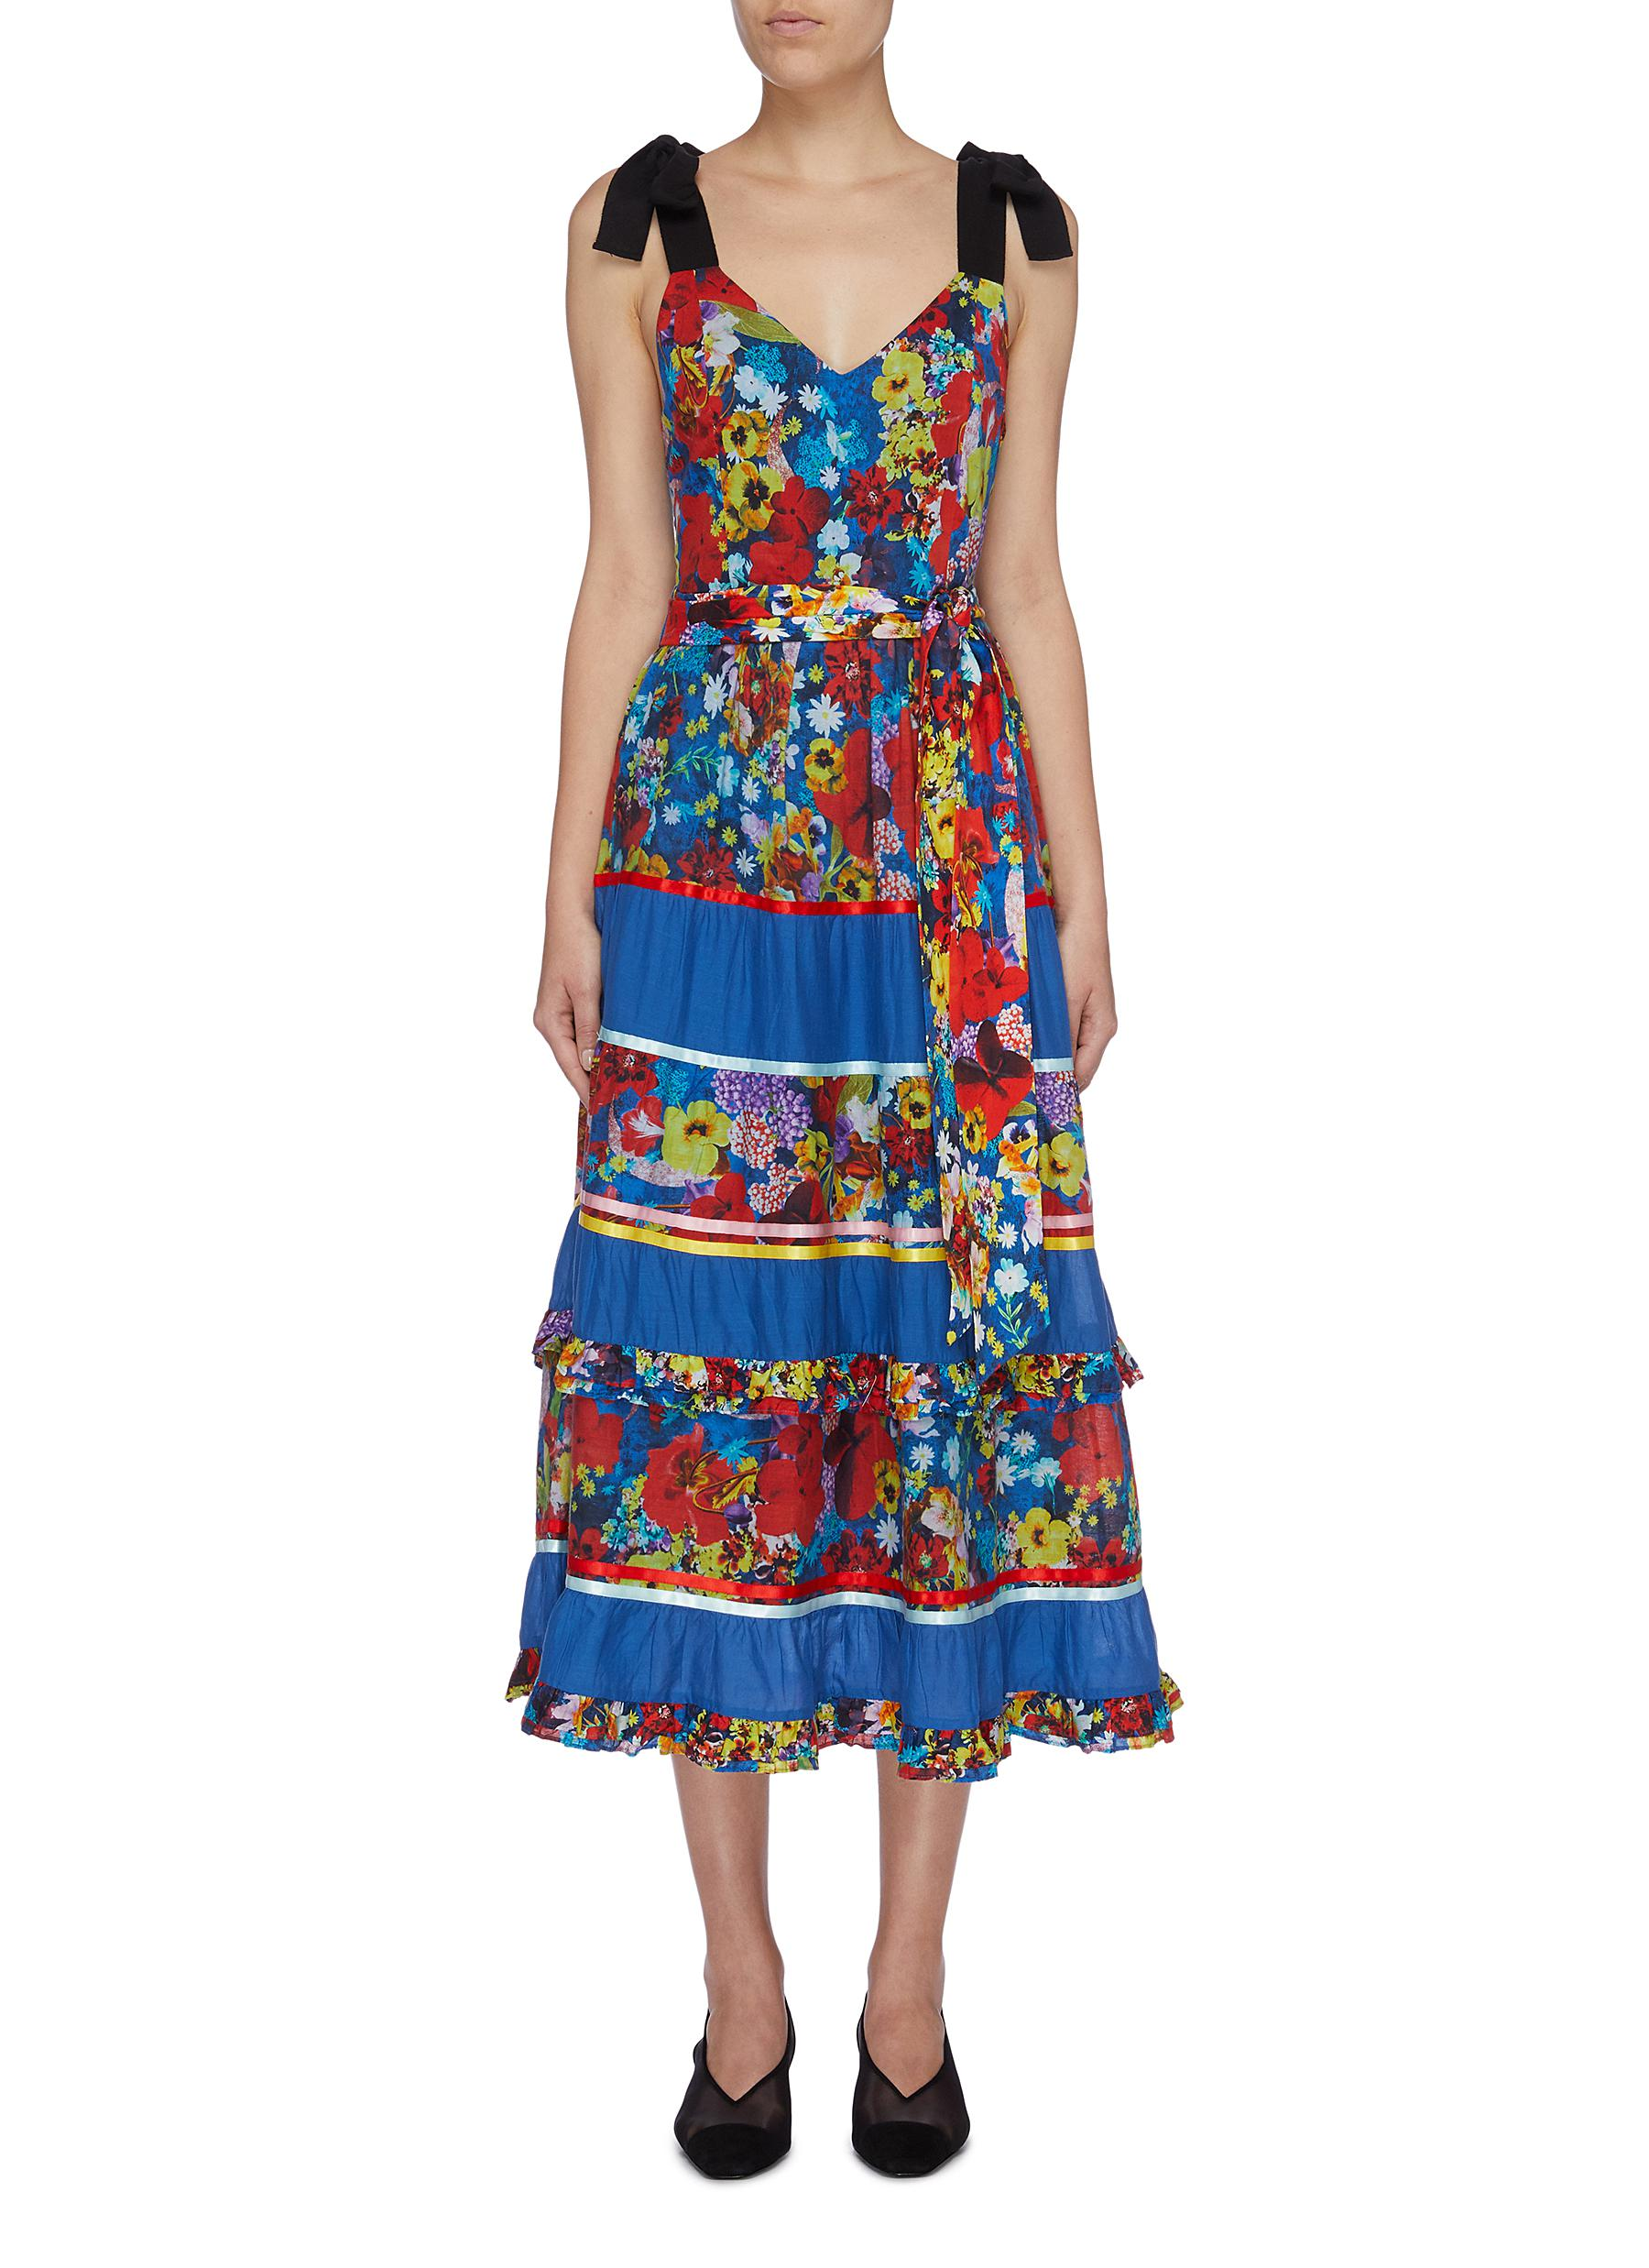 Gayla belted tie strap floral print tiered dress by Alice + Olivia